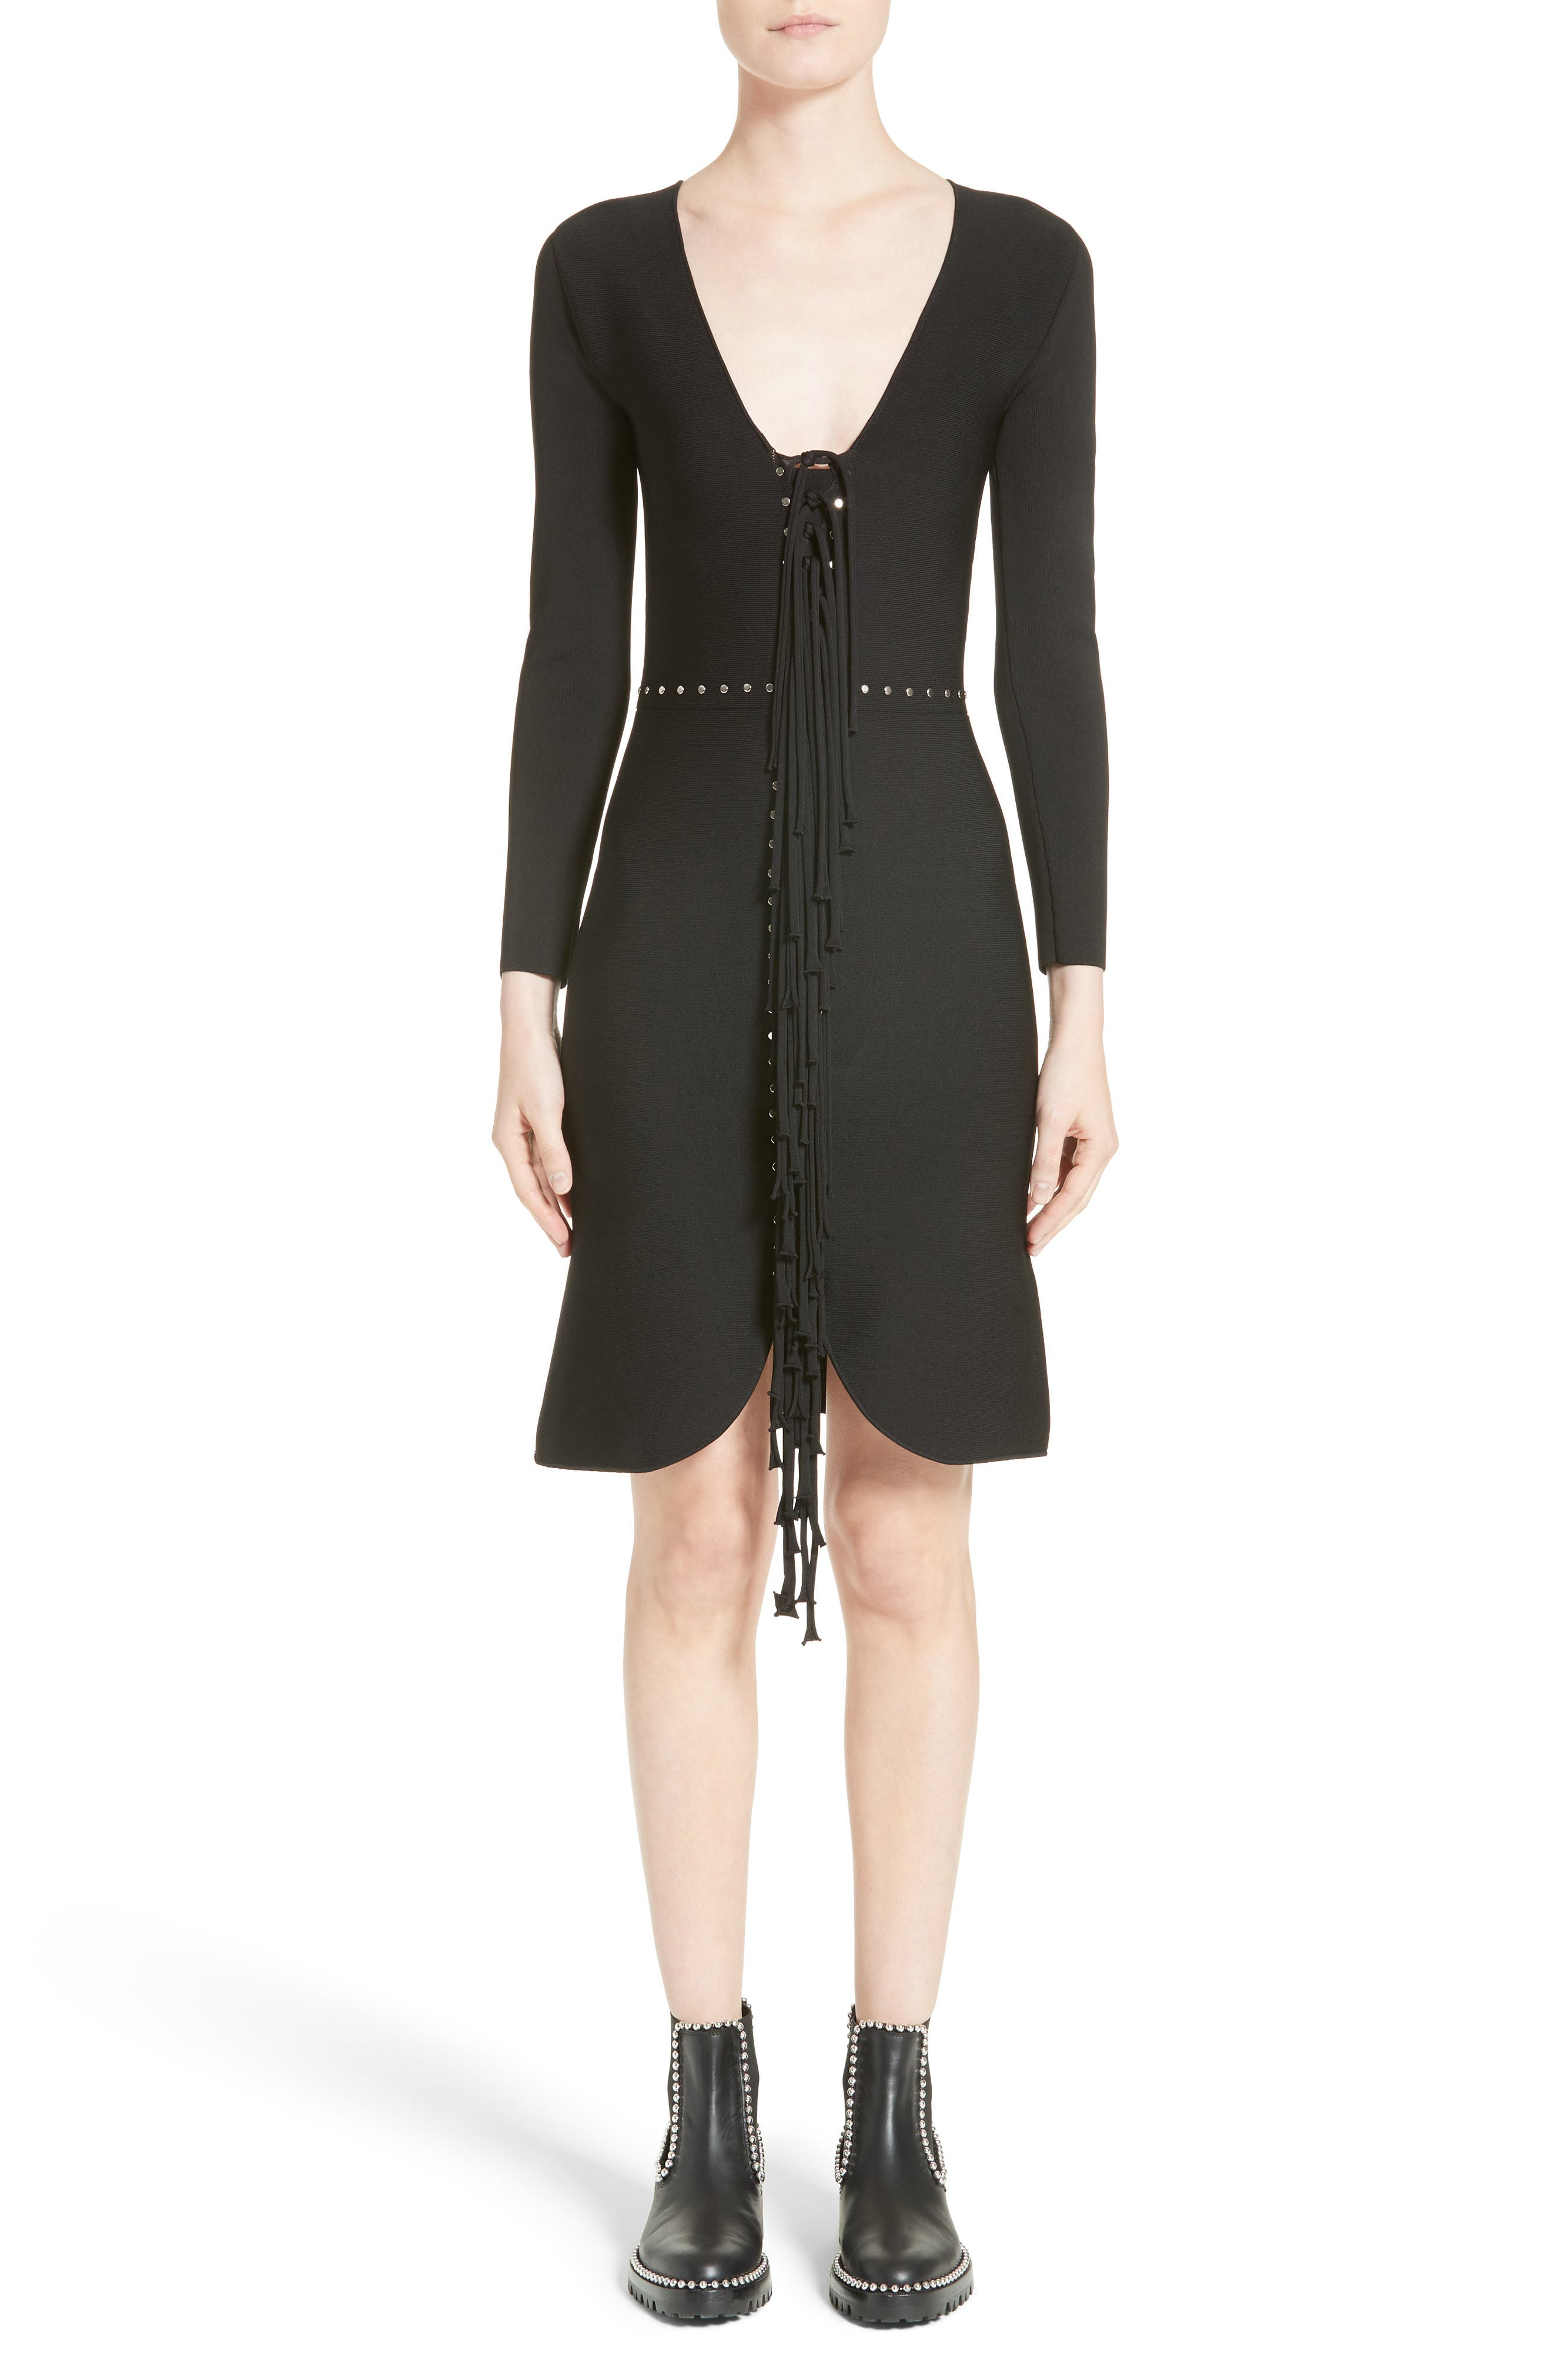 Alexander Wang Knotted Fringe Knit Dress